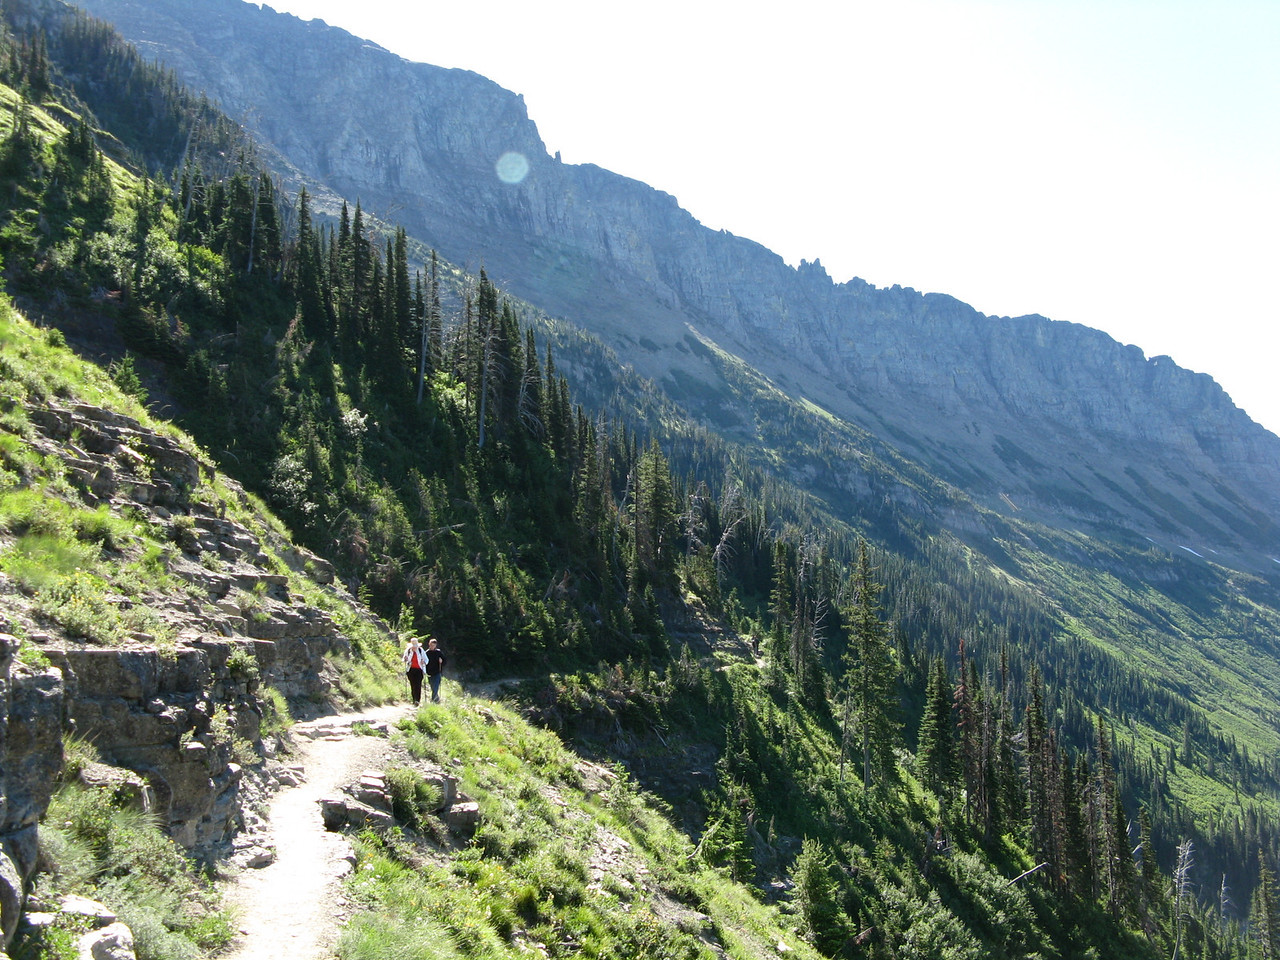 Looking back on the trail, which extends from the left lower foreground to the right side of the picture, although it is hard to see the trail beyond the tree line.